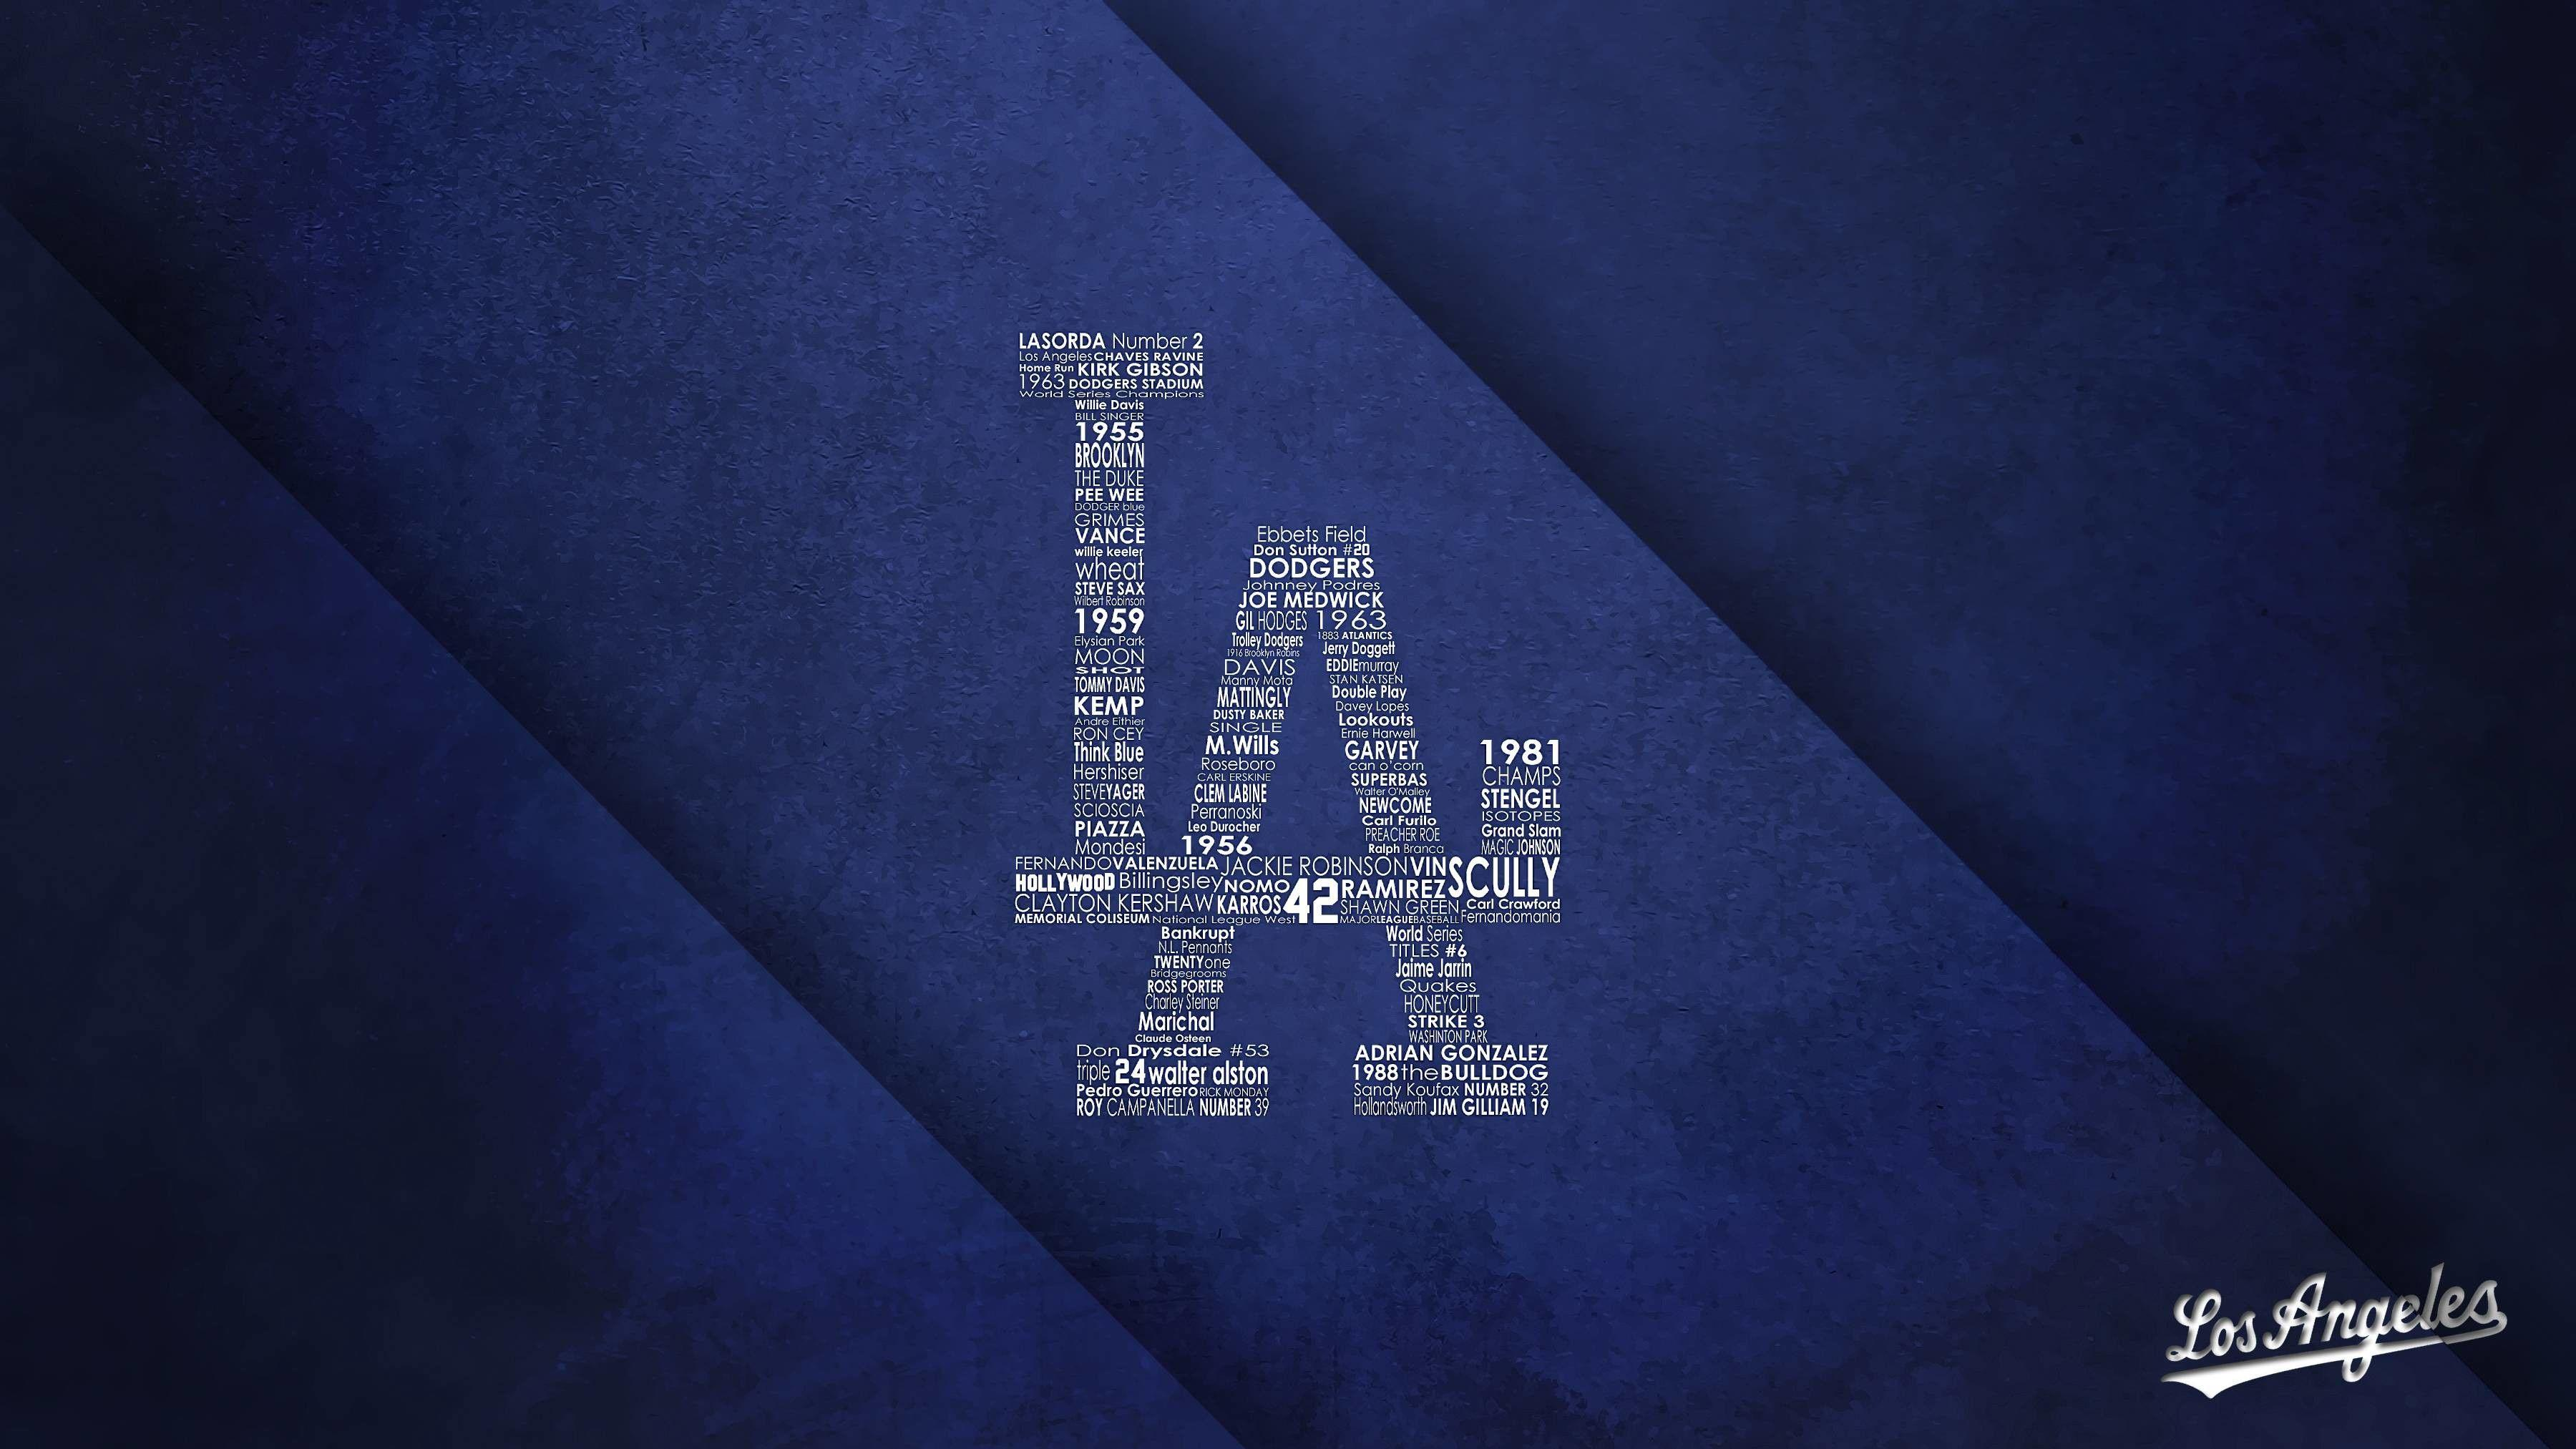 La Dodgers Wallpapers Wallpaper Cave